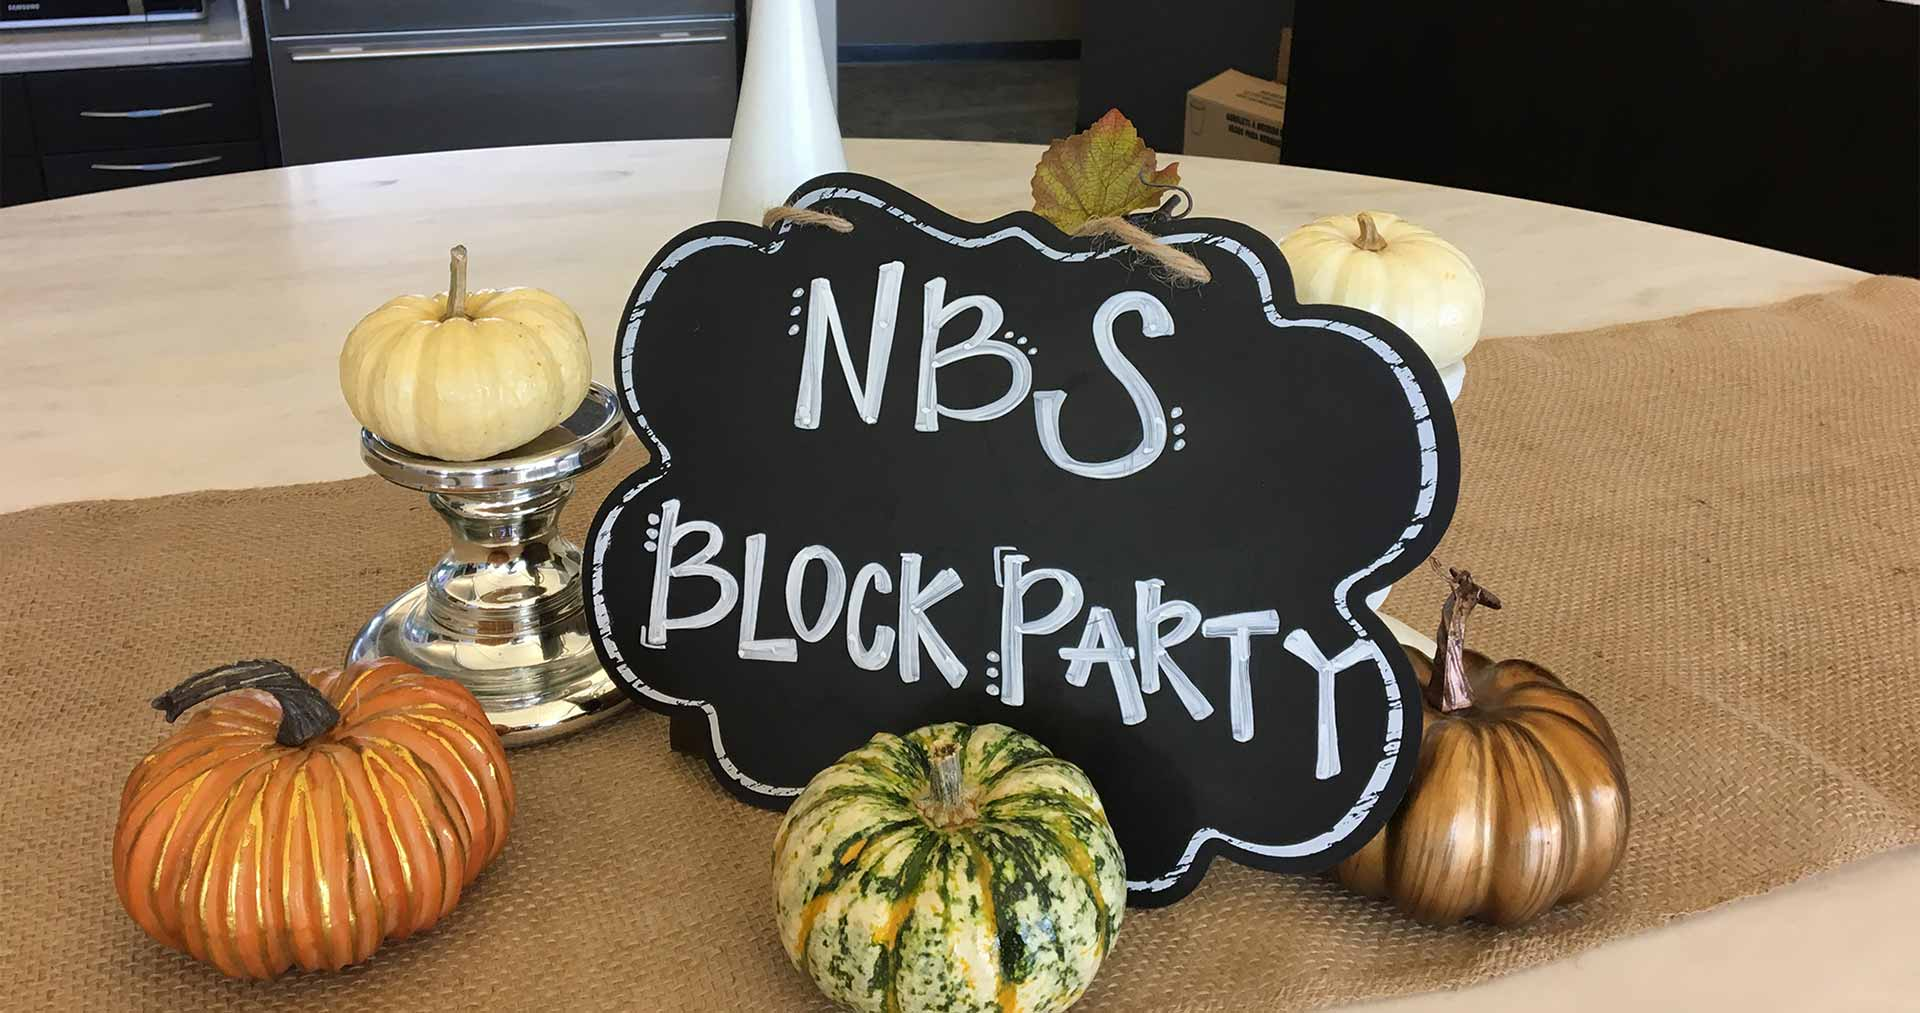 NBS Block Party